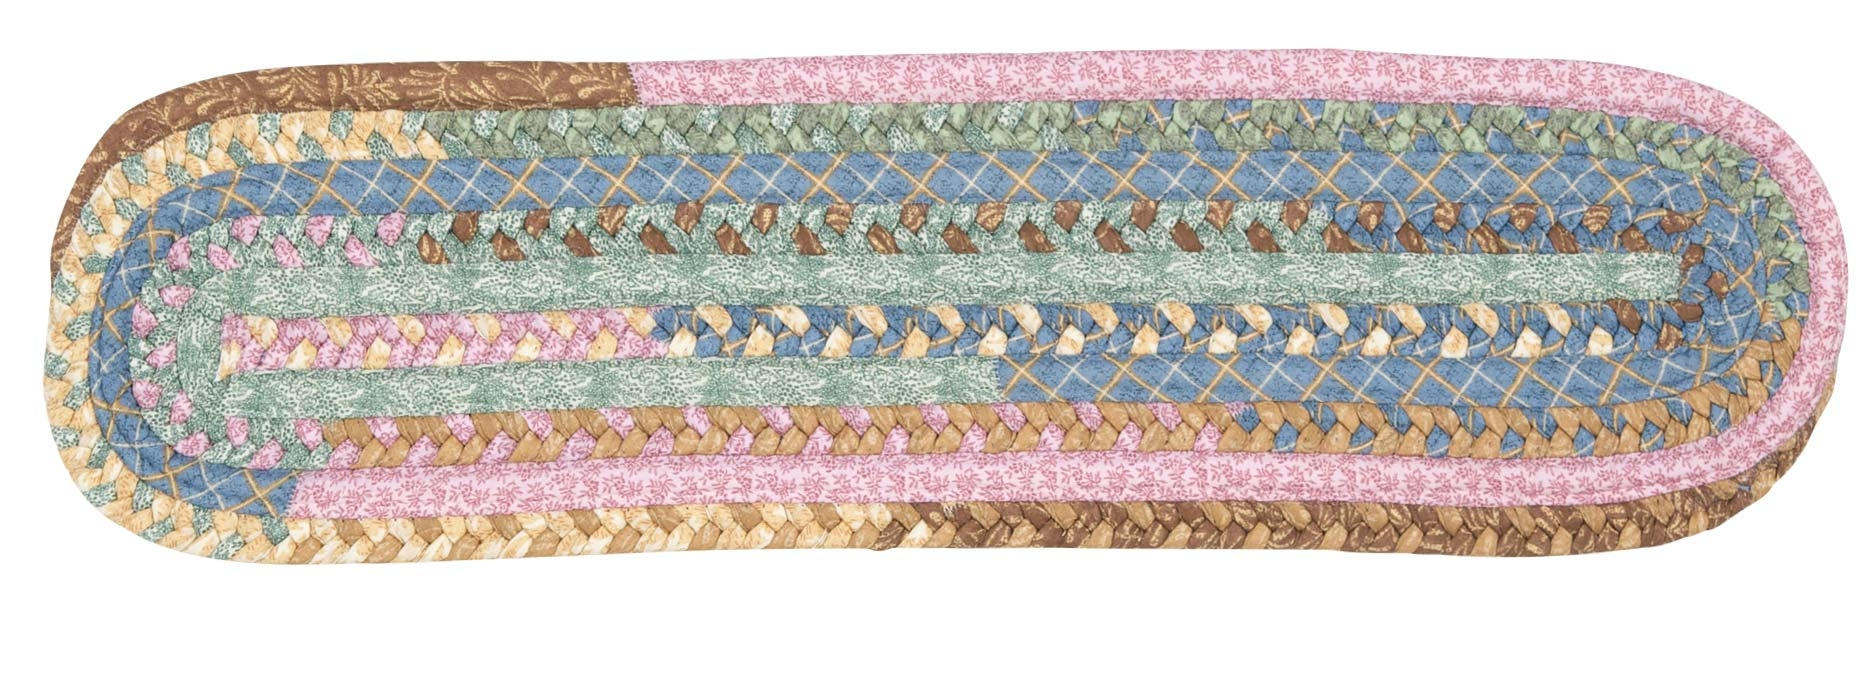 Olivera Stair Treads Colonial Mills Cmi Braided Rugs Outdoor With Braided Rug Stair Treads (Image 9 of 15)